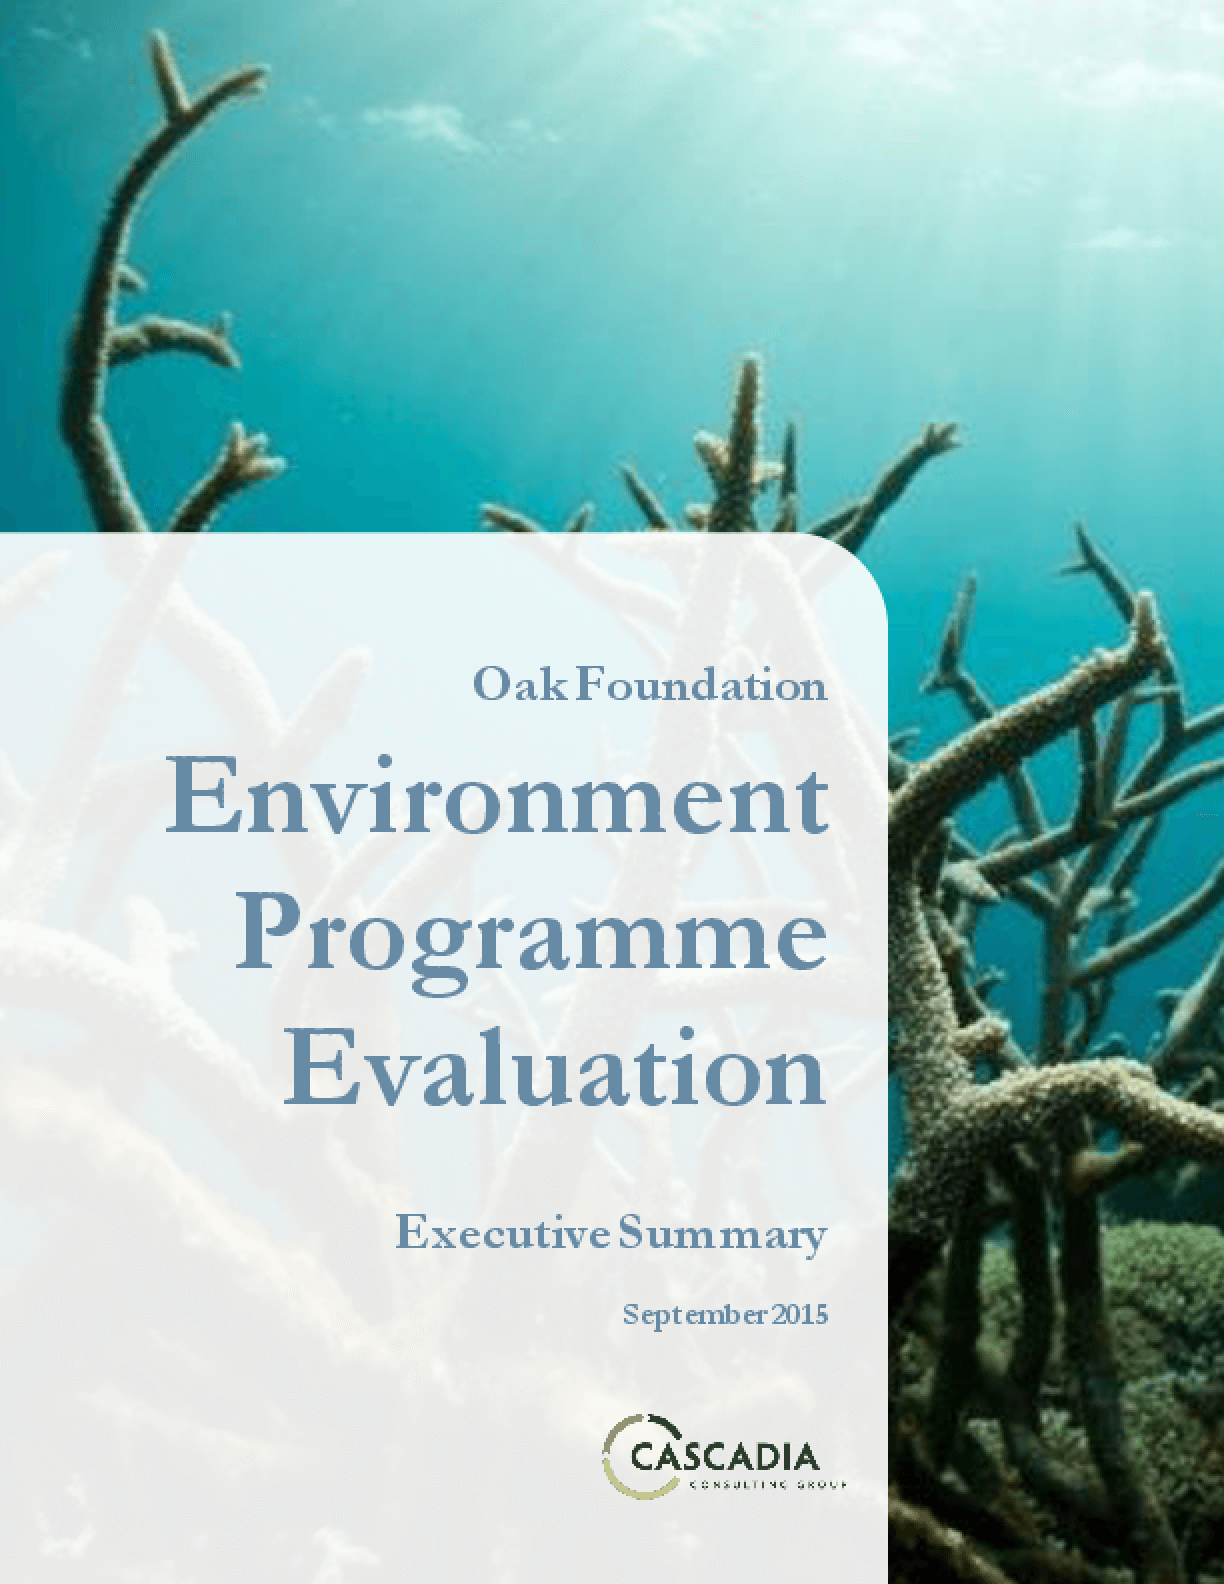 Oak Foundation Environment Programme Evaluation: Executive Summary